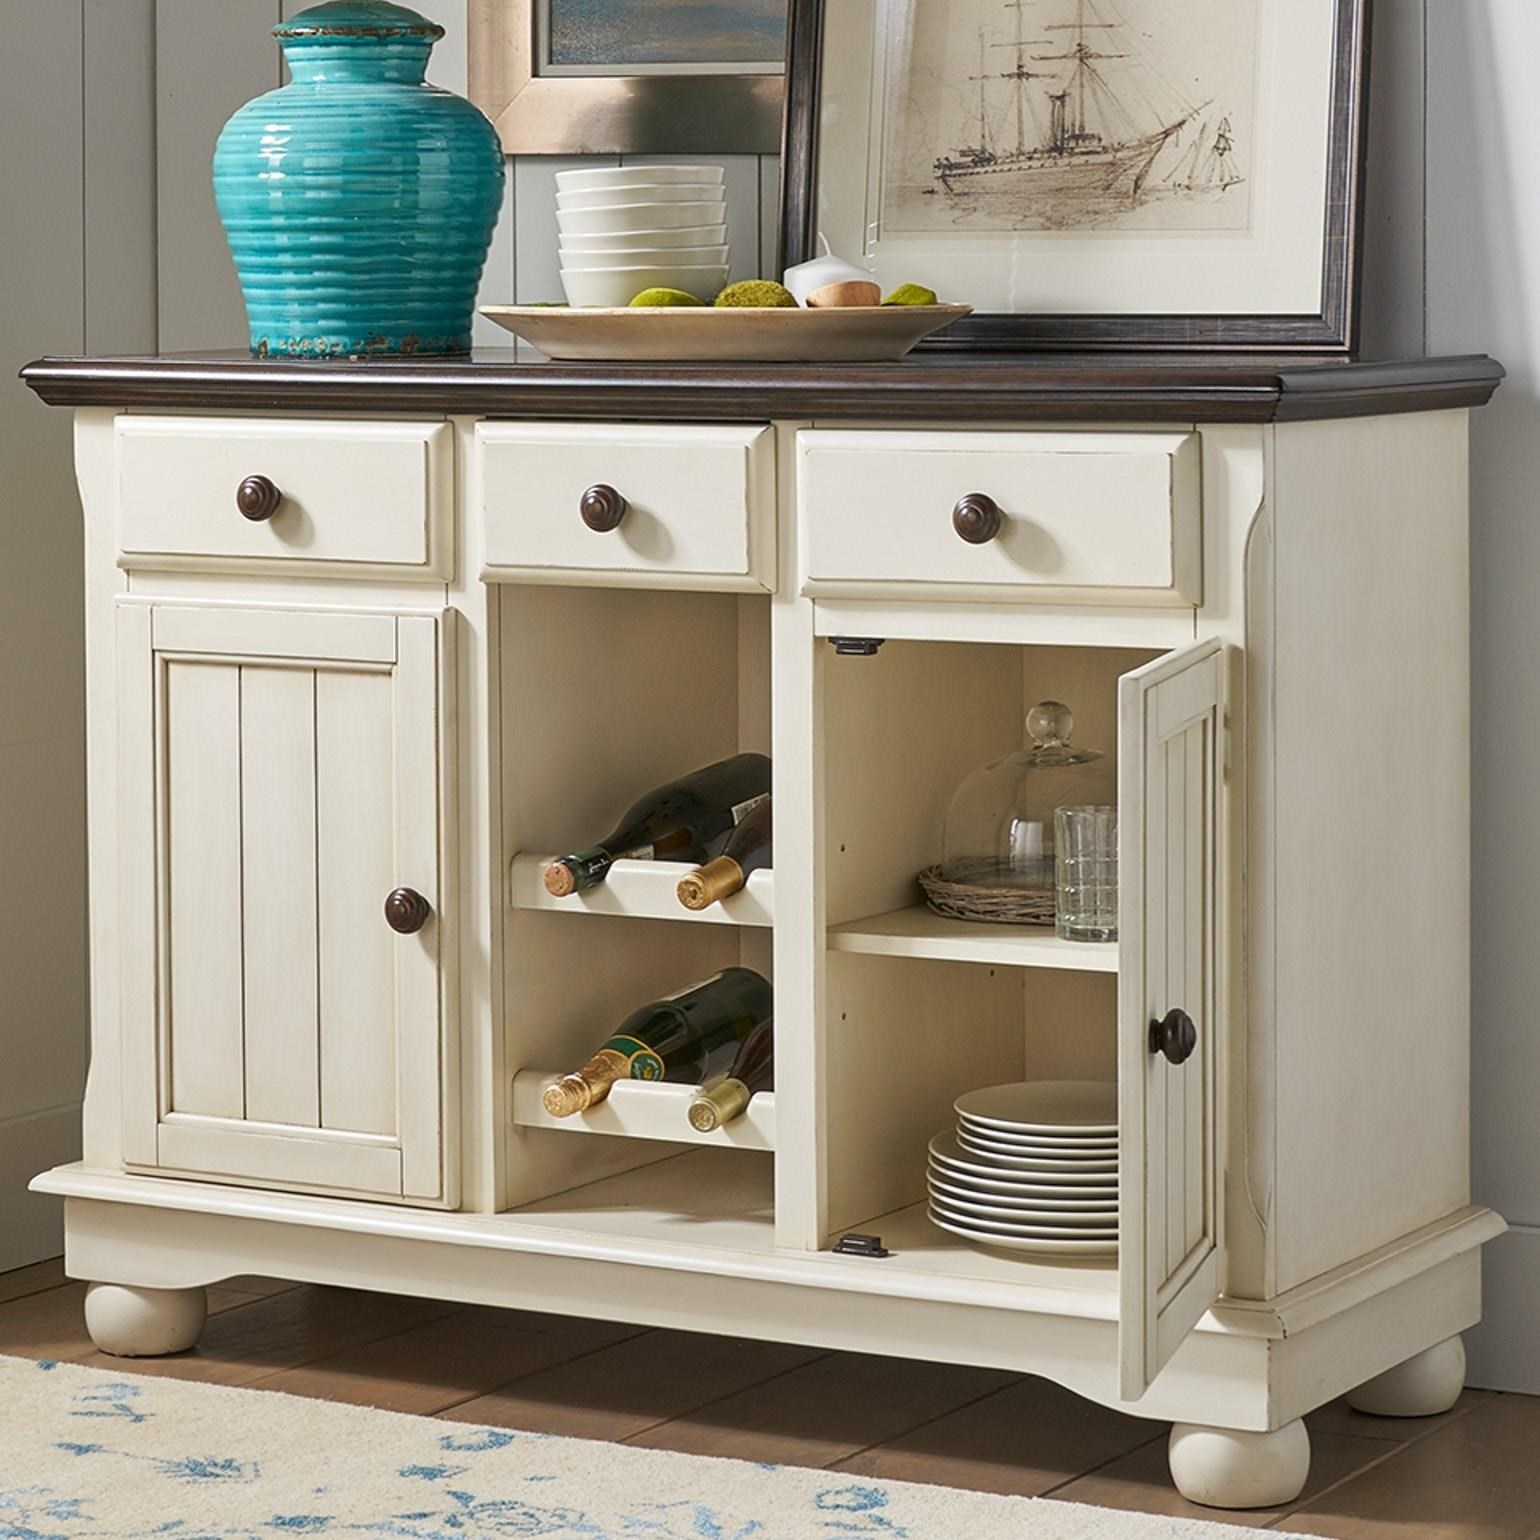 British Isles - CO Dining Room Server by A-A at Walker's Furniture